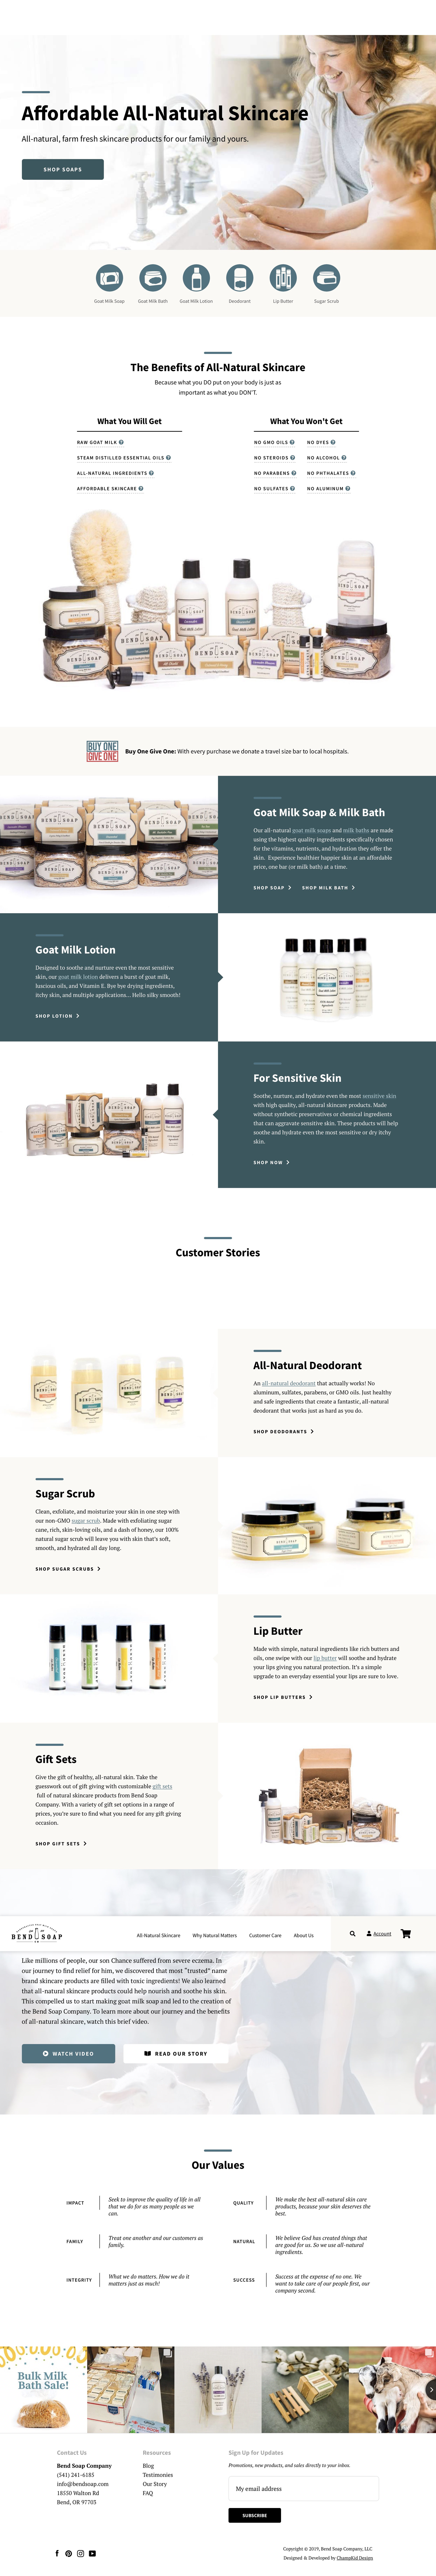 Bend Soap Company | Goat Milk Soap & All Natural Skin Care Products.jpg